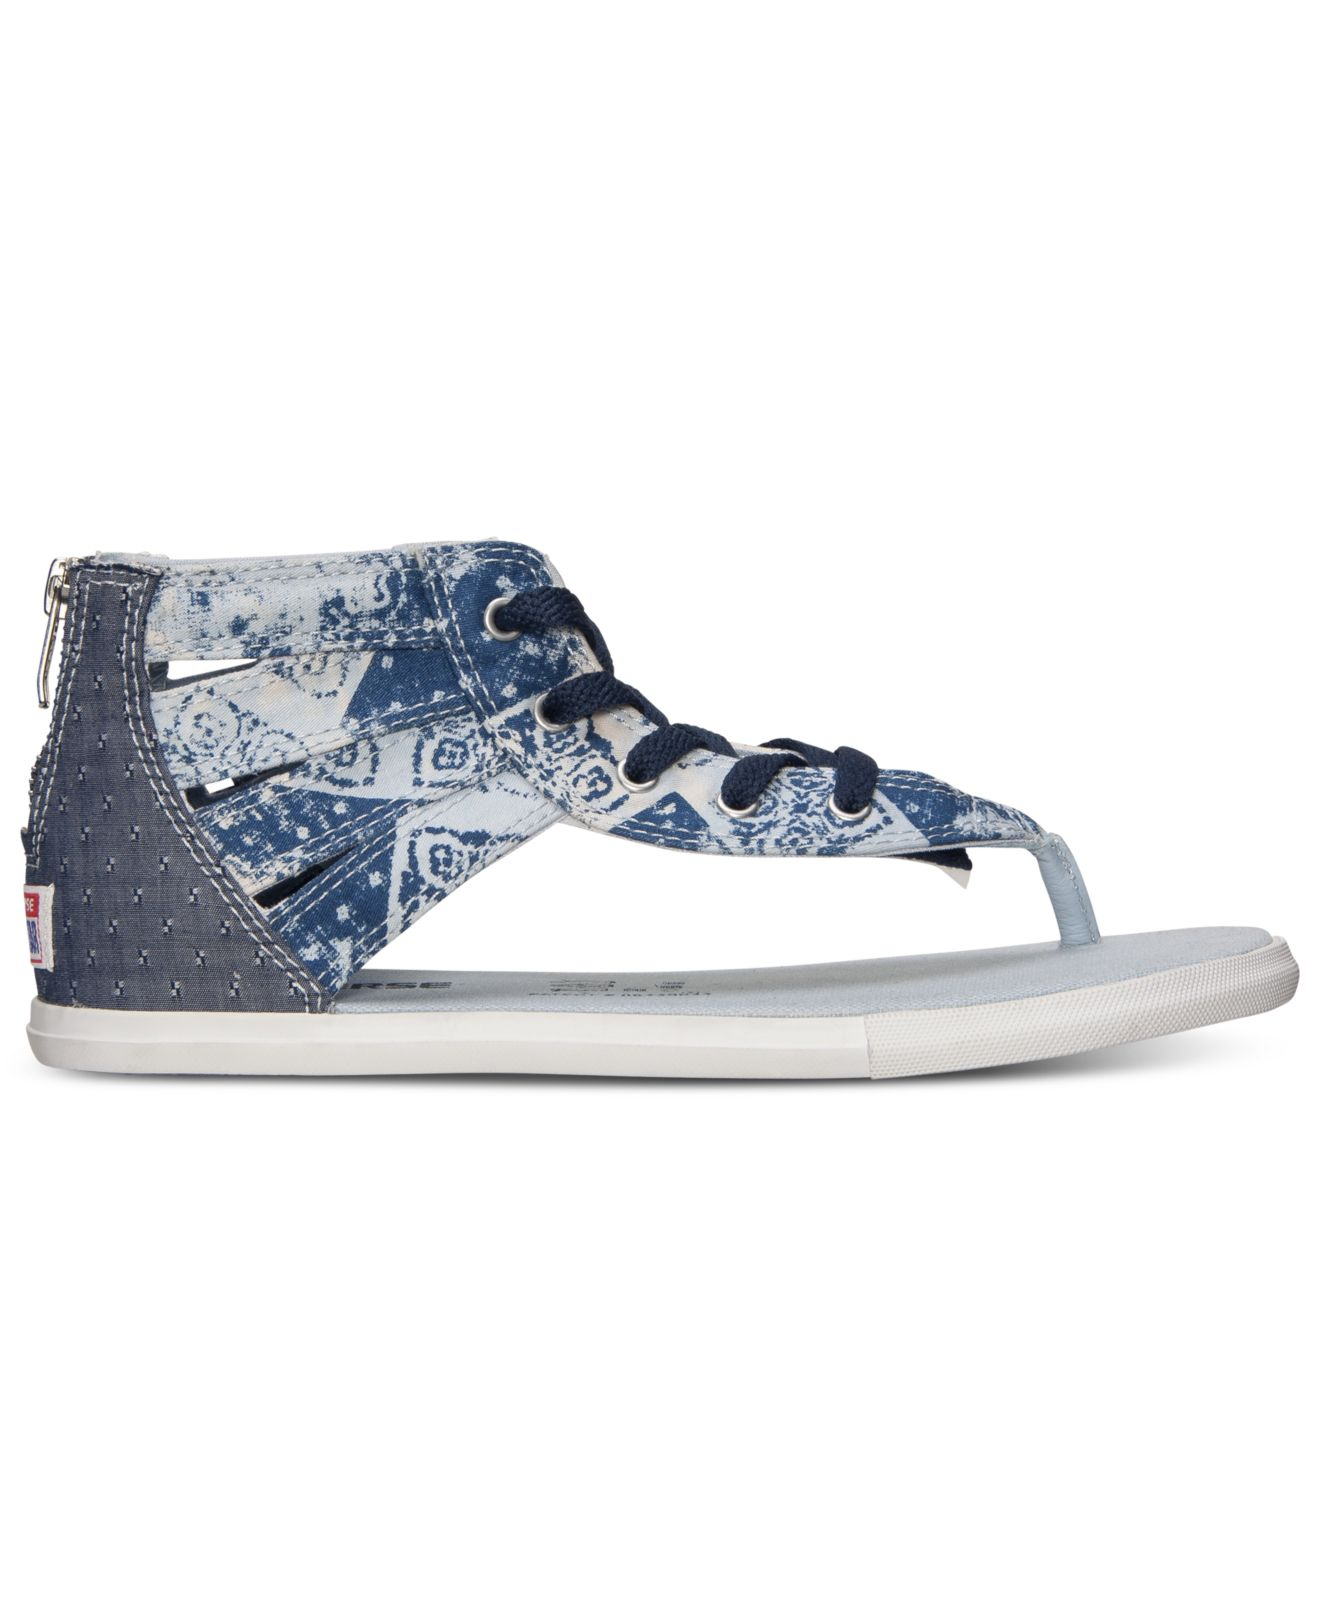 f95abd7a0bd7 Lyst - Converse Women s Chuck Taylor Gladiator Thong Sandals From ...